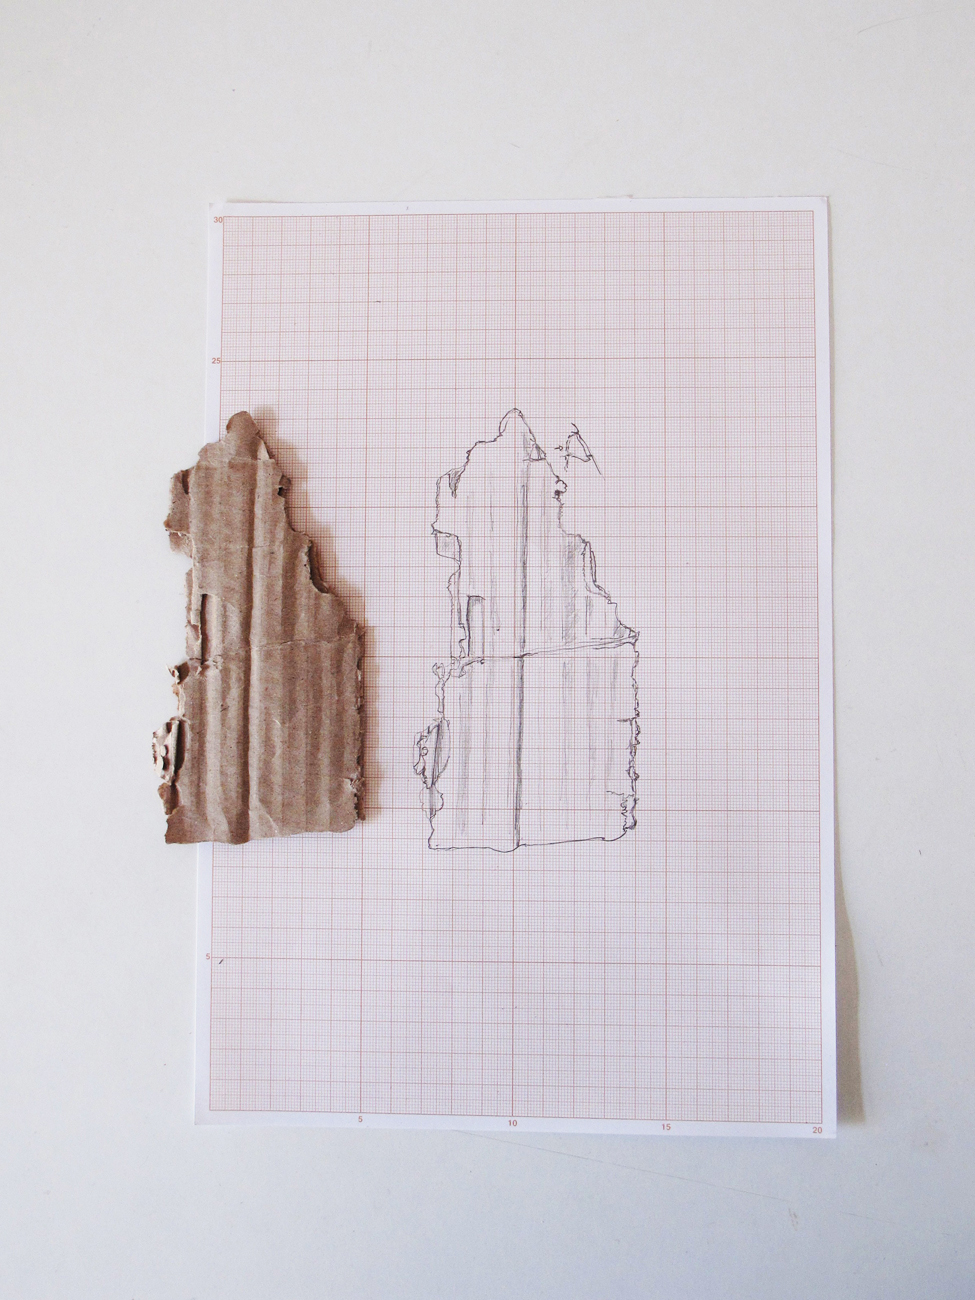 cardboard fragment next to technical drawing of it